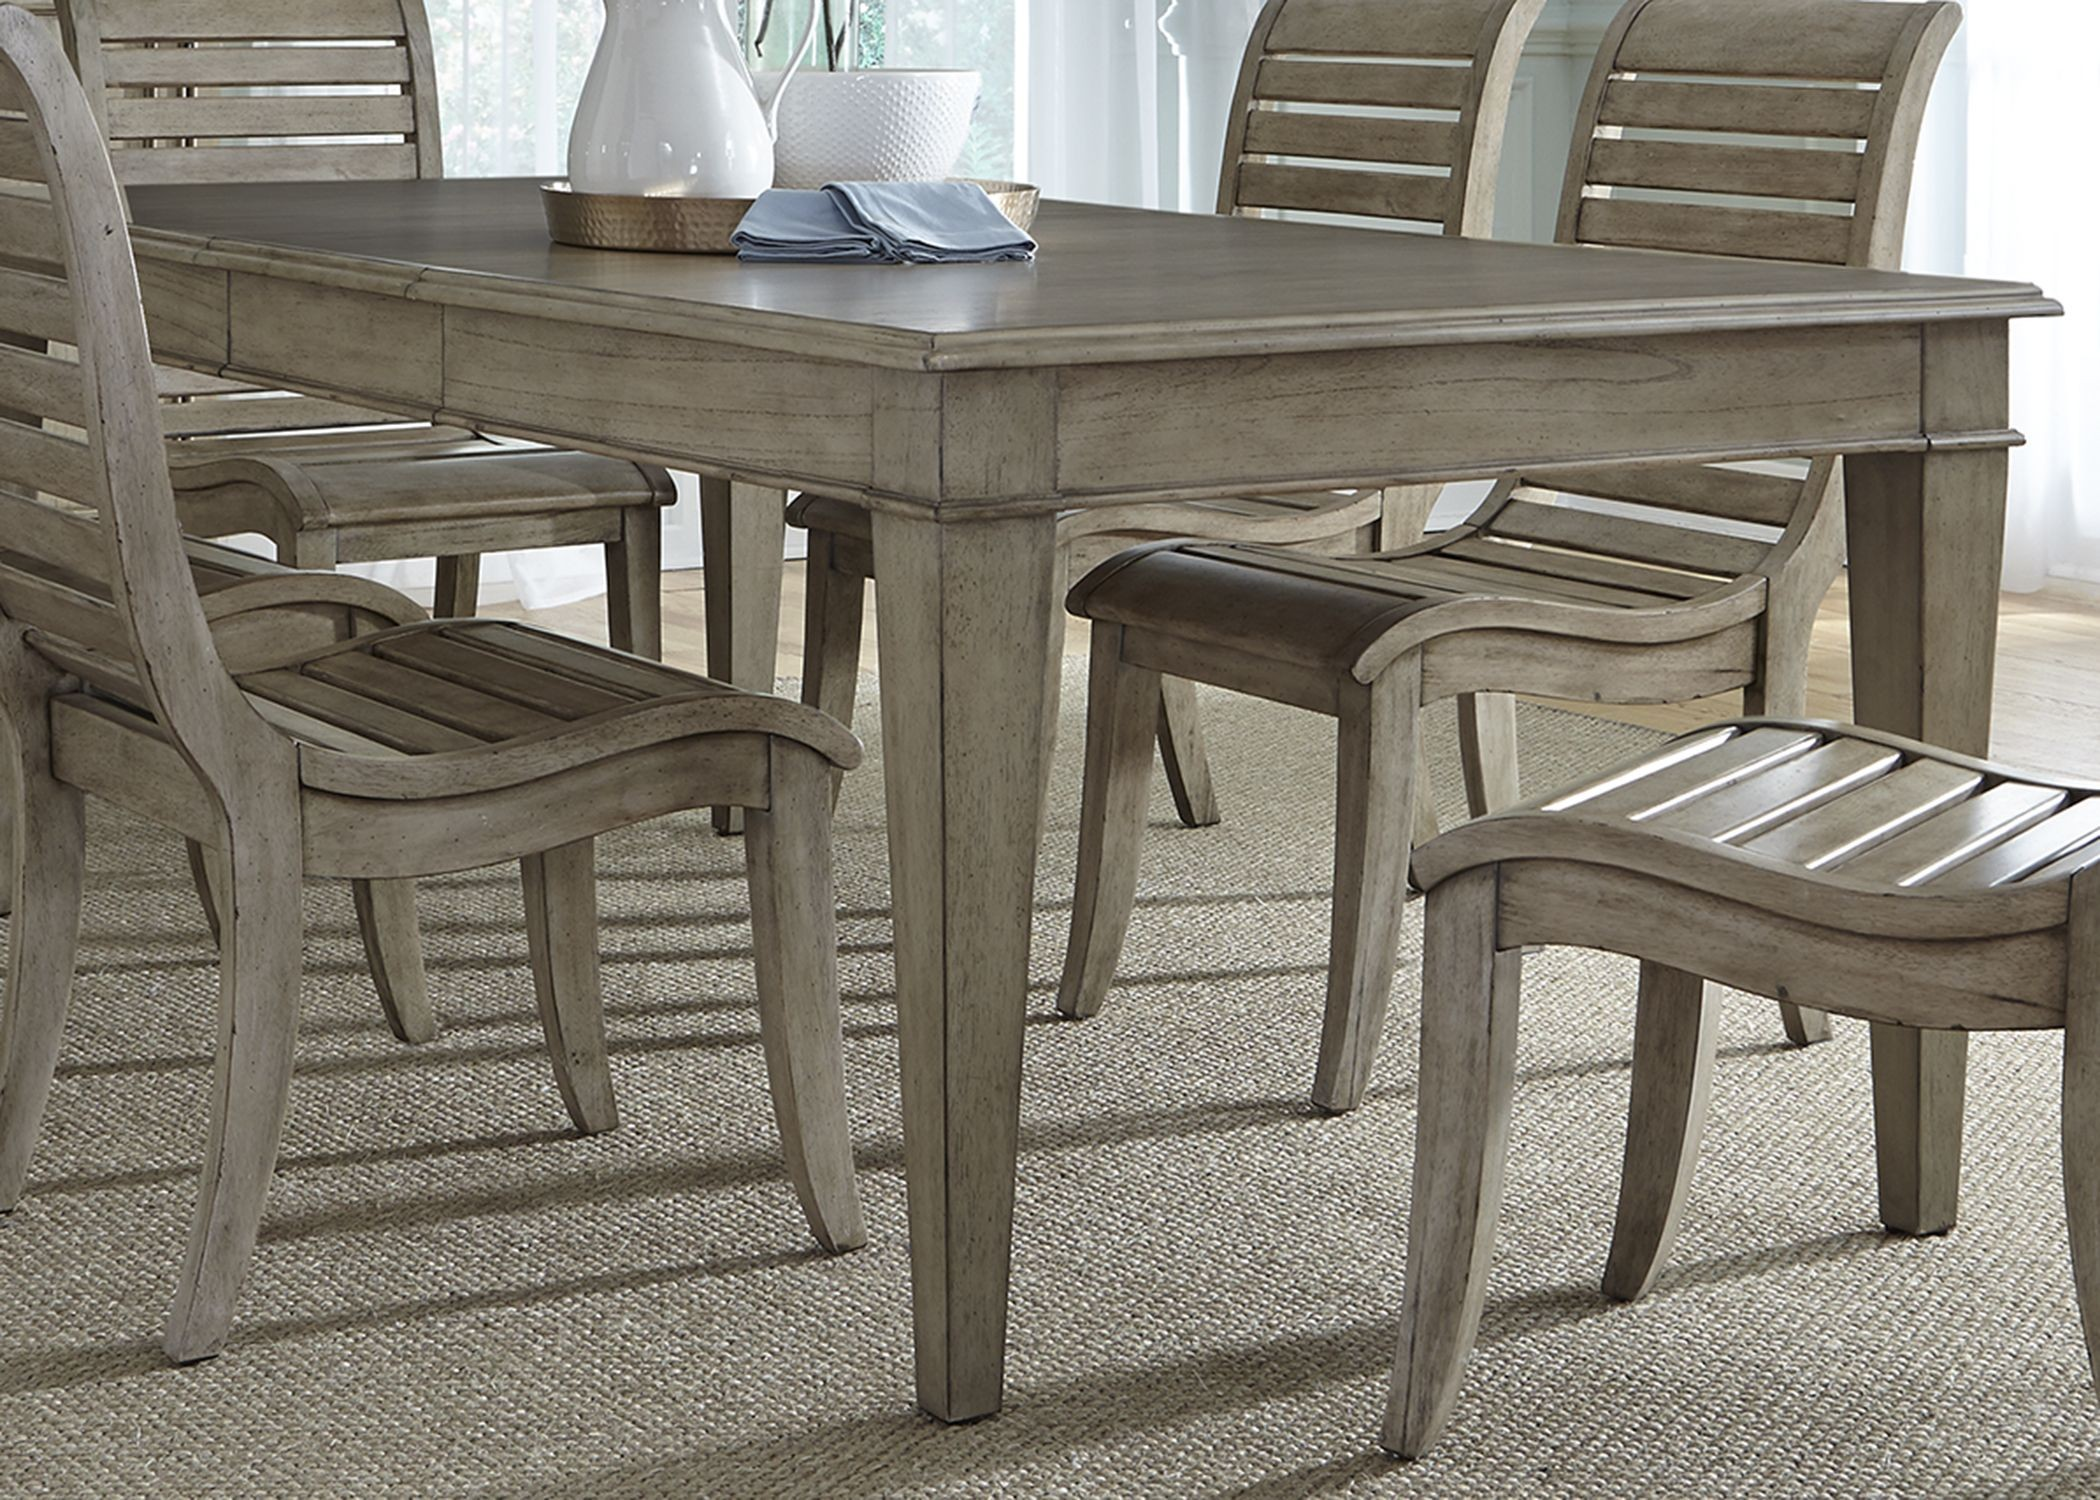 Grayton Grove Driftwood Extendable Rectangular Leg Dining Table ... for Driftwood Outdoor Furniture  303mzq